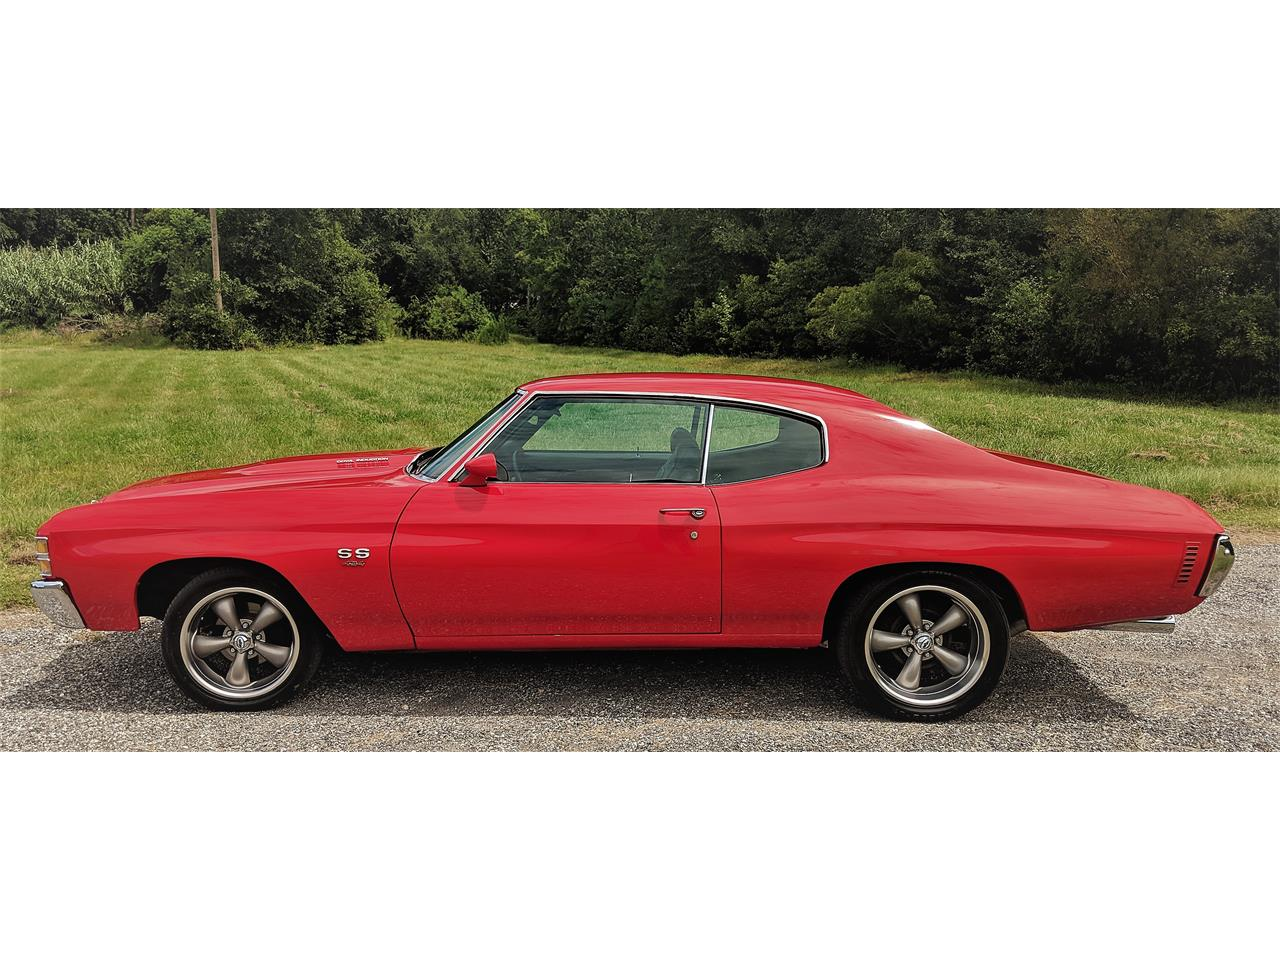 Large Picture of Classic '71 Chevrolet Chevelle SS - $33,000.00 Offered by a Private Seller - OH9I